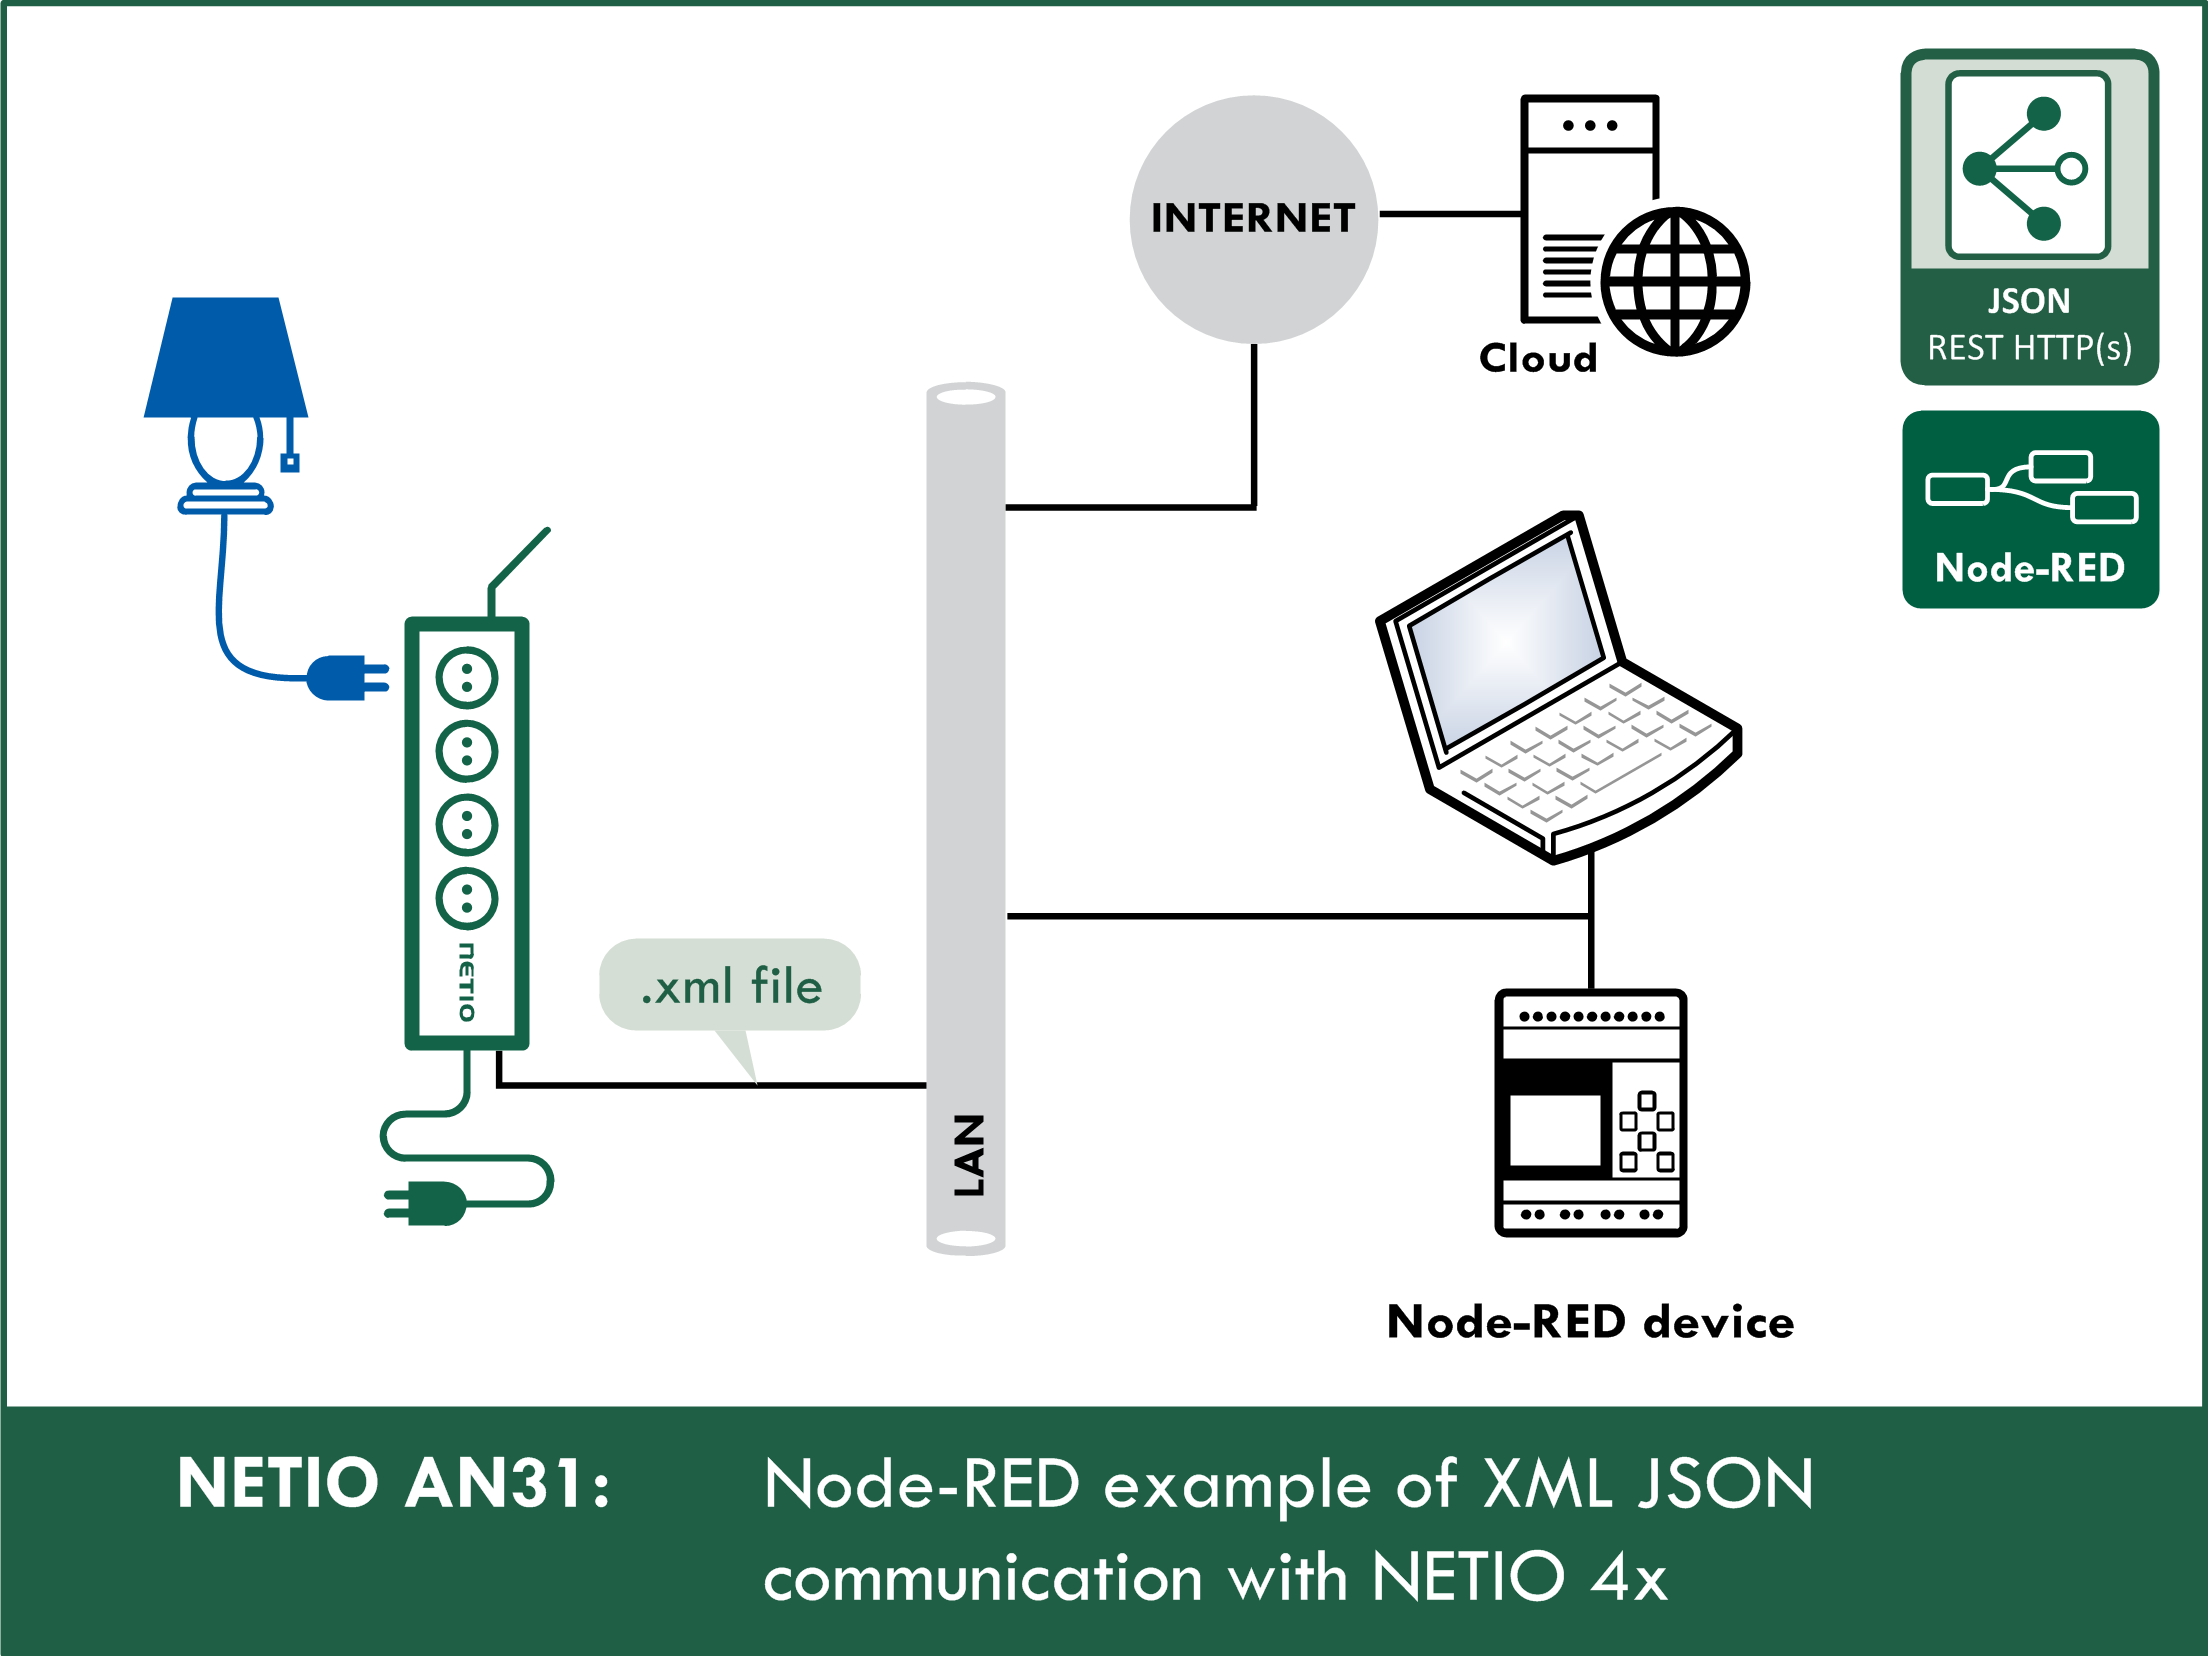 Node-RED example of REST XML communication with NETIO 4x